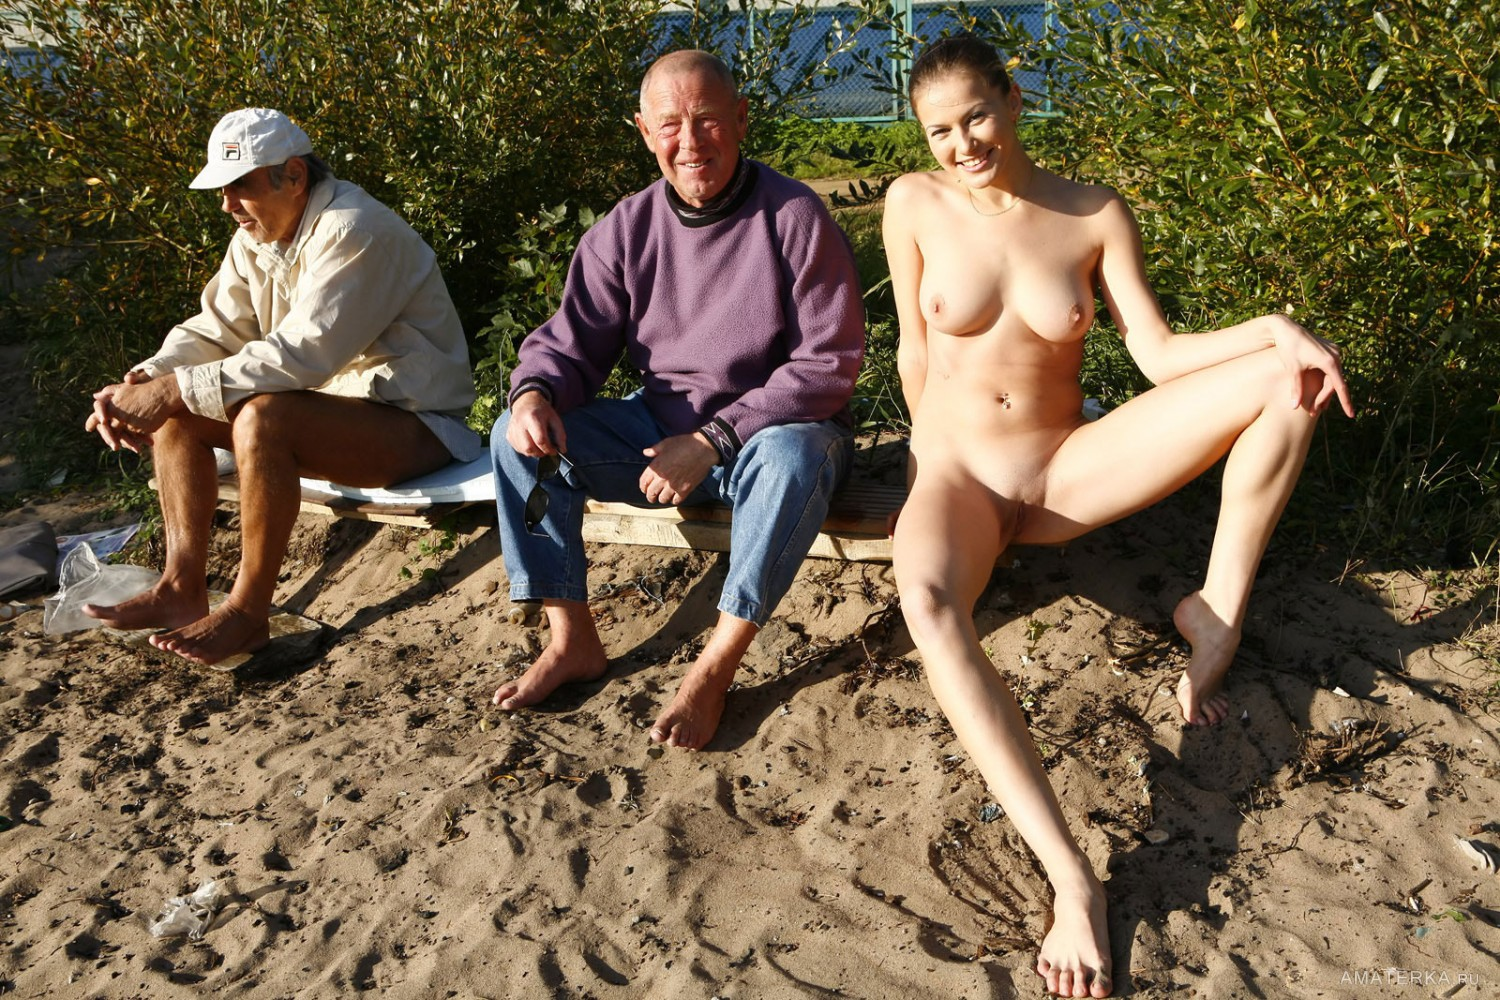 naked-girls-in-public-mix-vol5-24